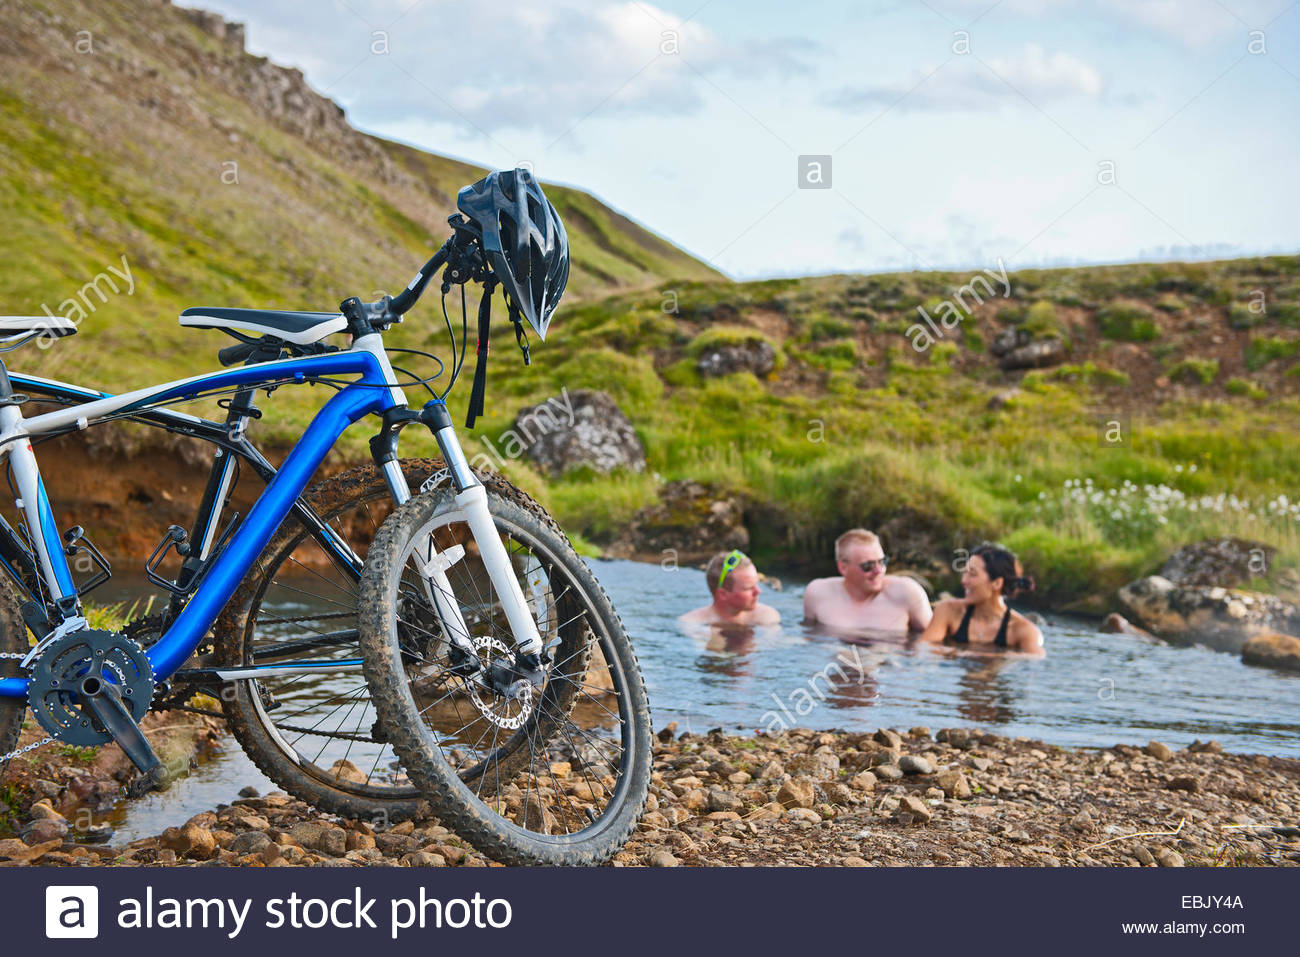 Three mountain bikers bathing in hot river, Reykjadalur valley, South West Iceland - Stock Image